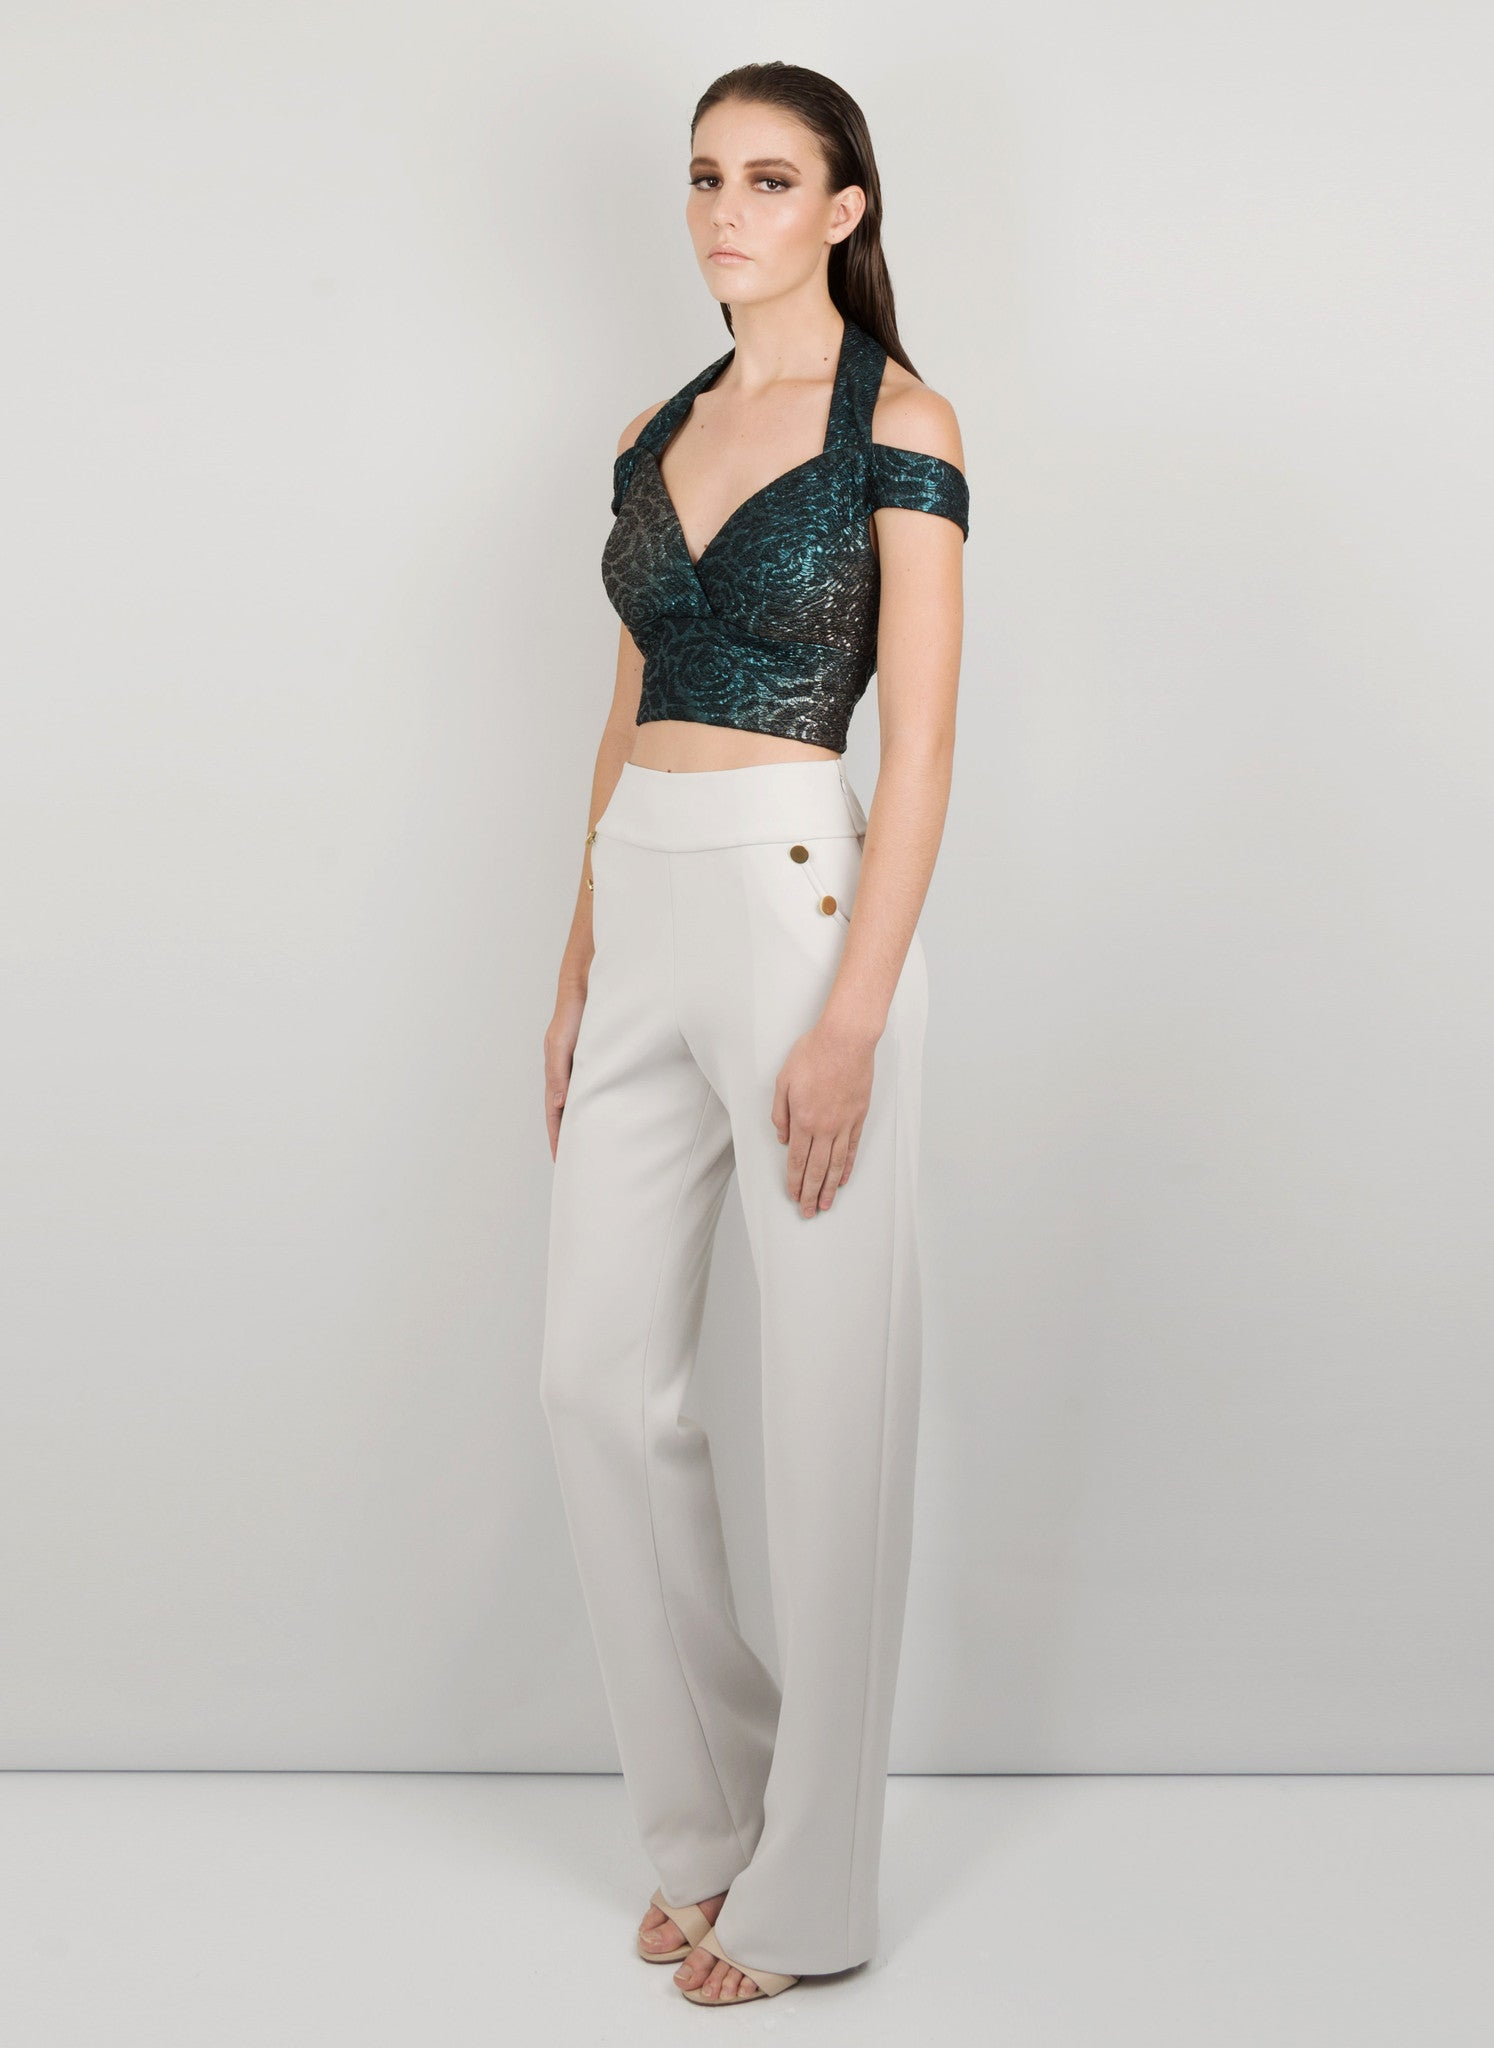 MADOLA-THE-LABEL - ALANA CROP TOP. Luxurious fabric which hugs the body, attached cups. Designed in Australia.MADOLA-THE-LABEL - ALANA CROP TOP. Luxurious fabric which hugs the body, attached cups. Designed in Australia.